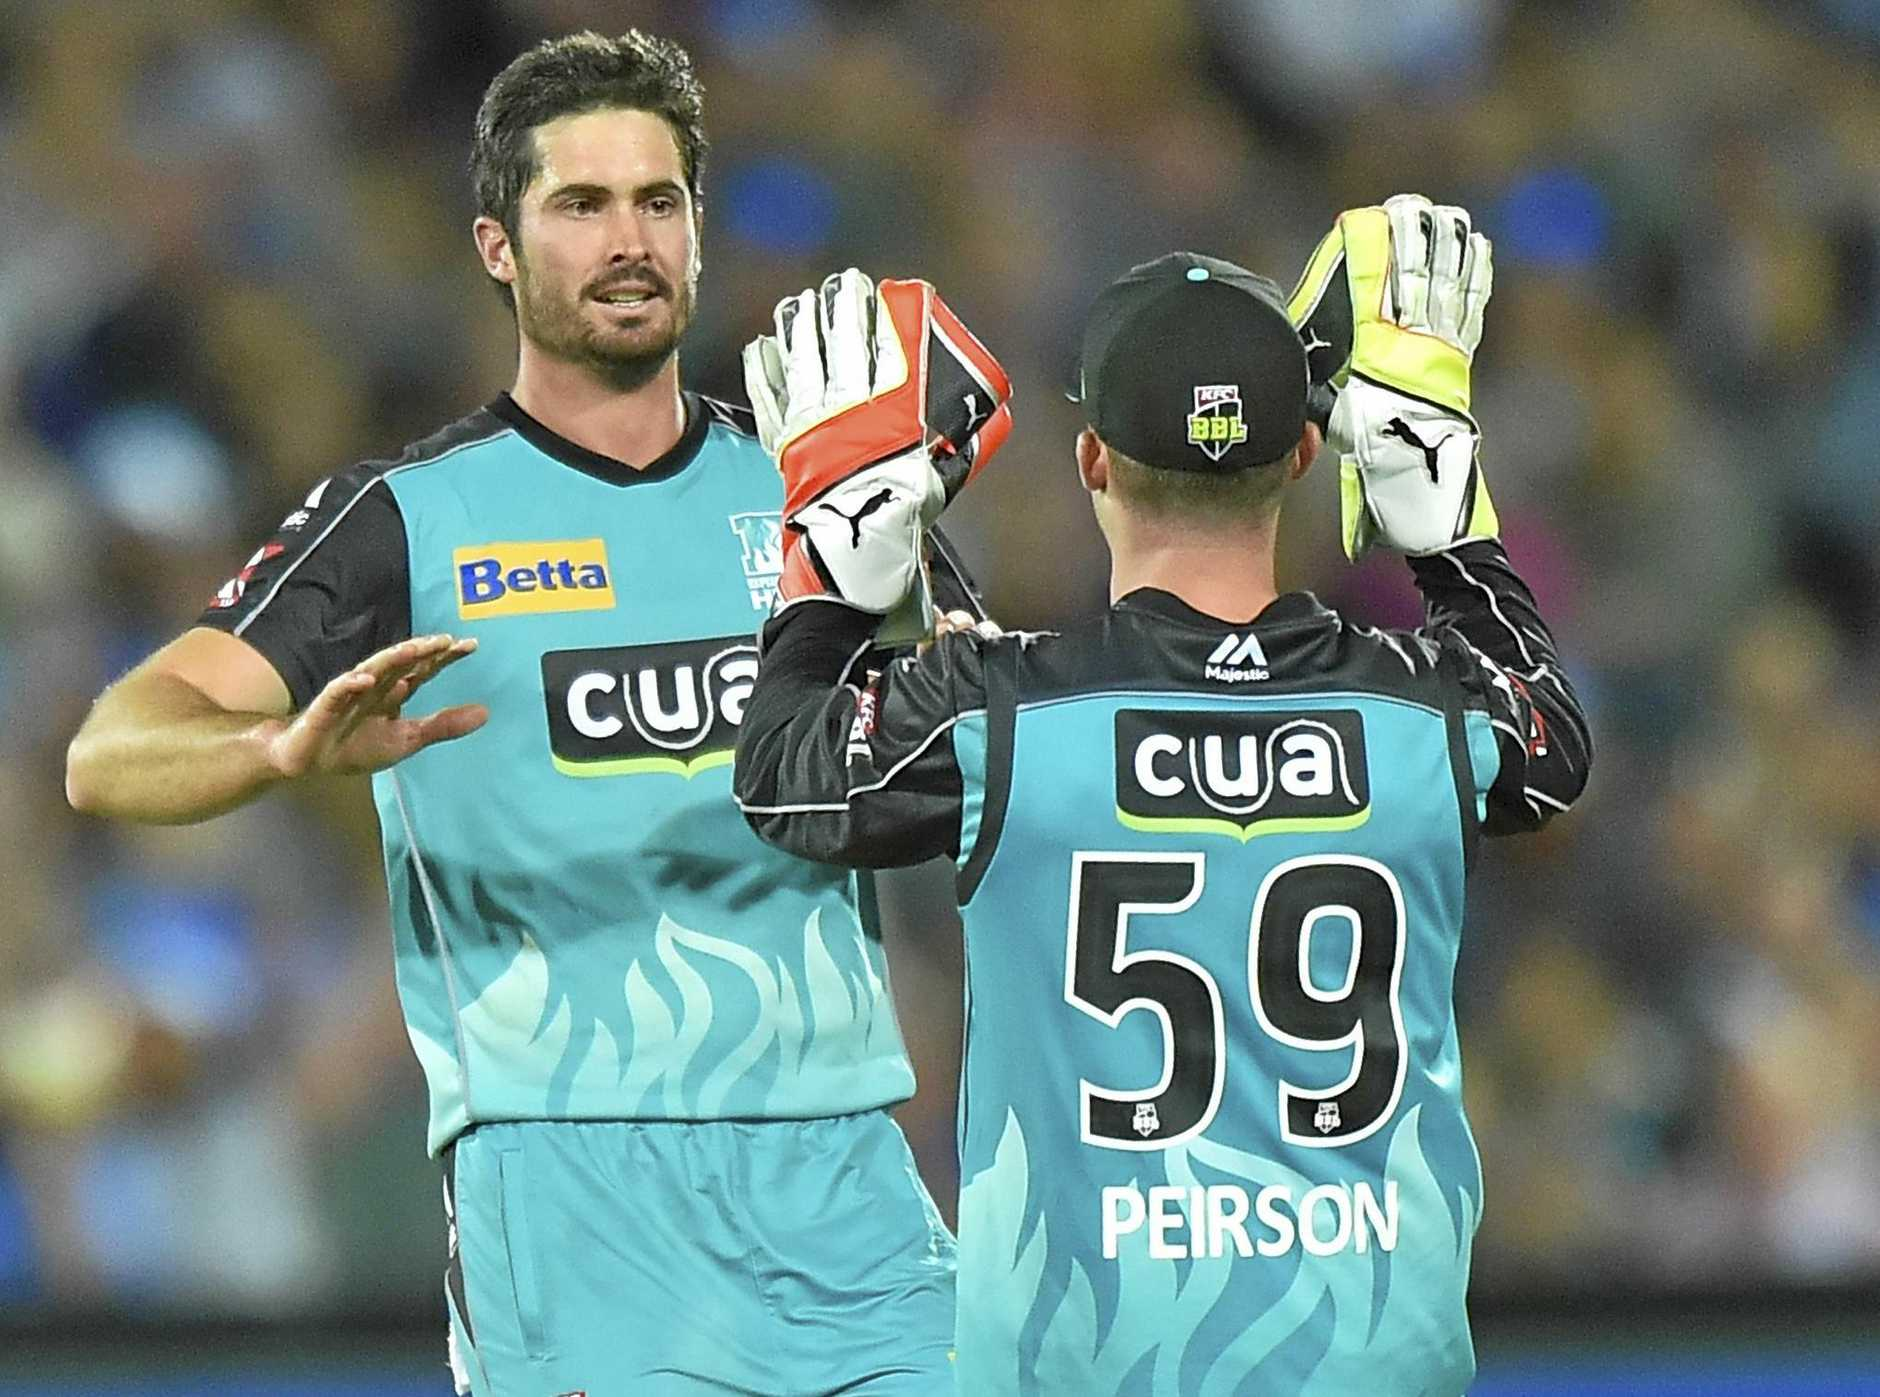 Ben Cutting (left) and Jimmy Peirson of the Heat celebrate a dismissal.